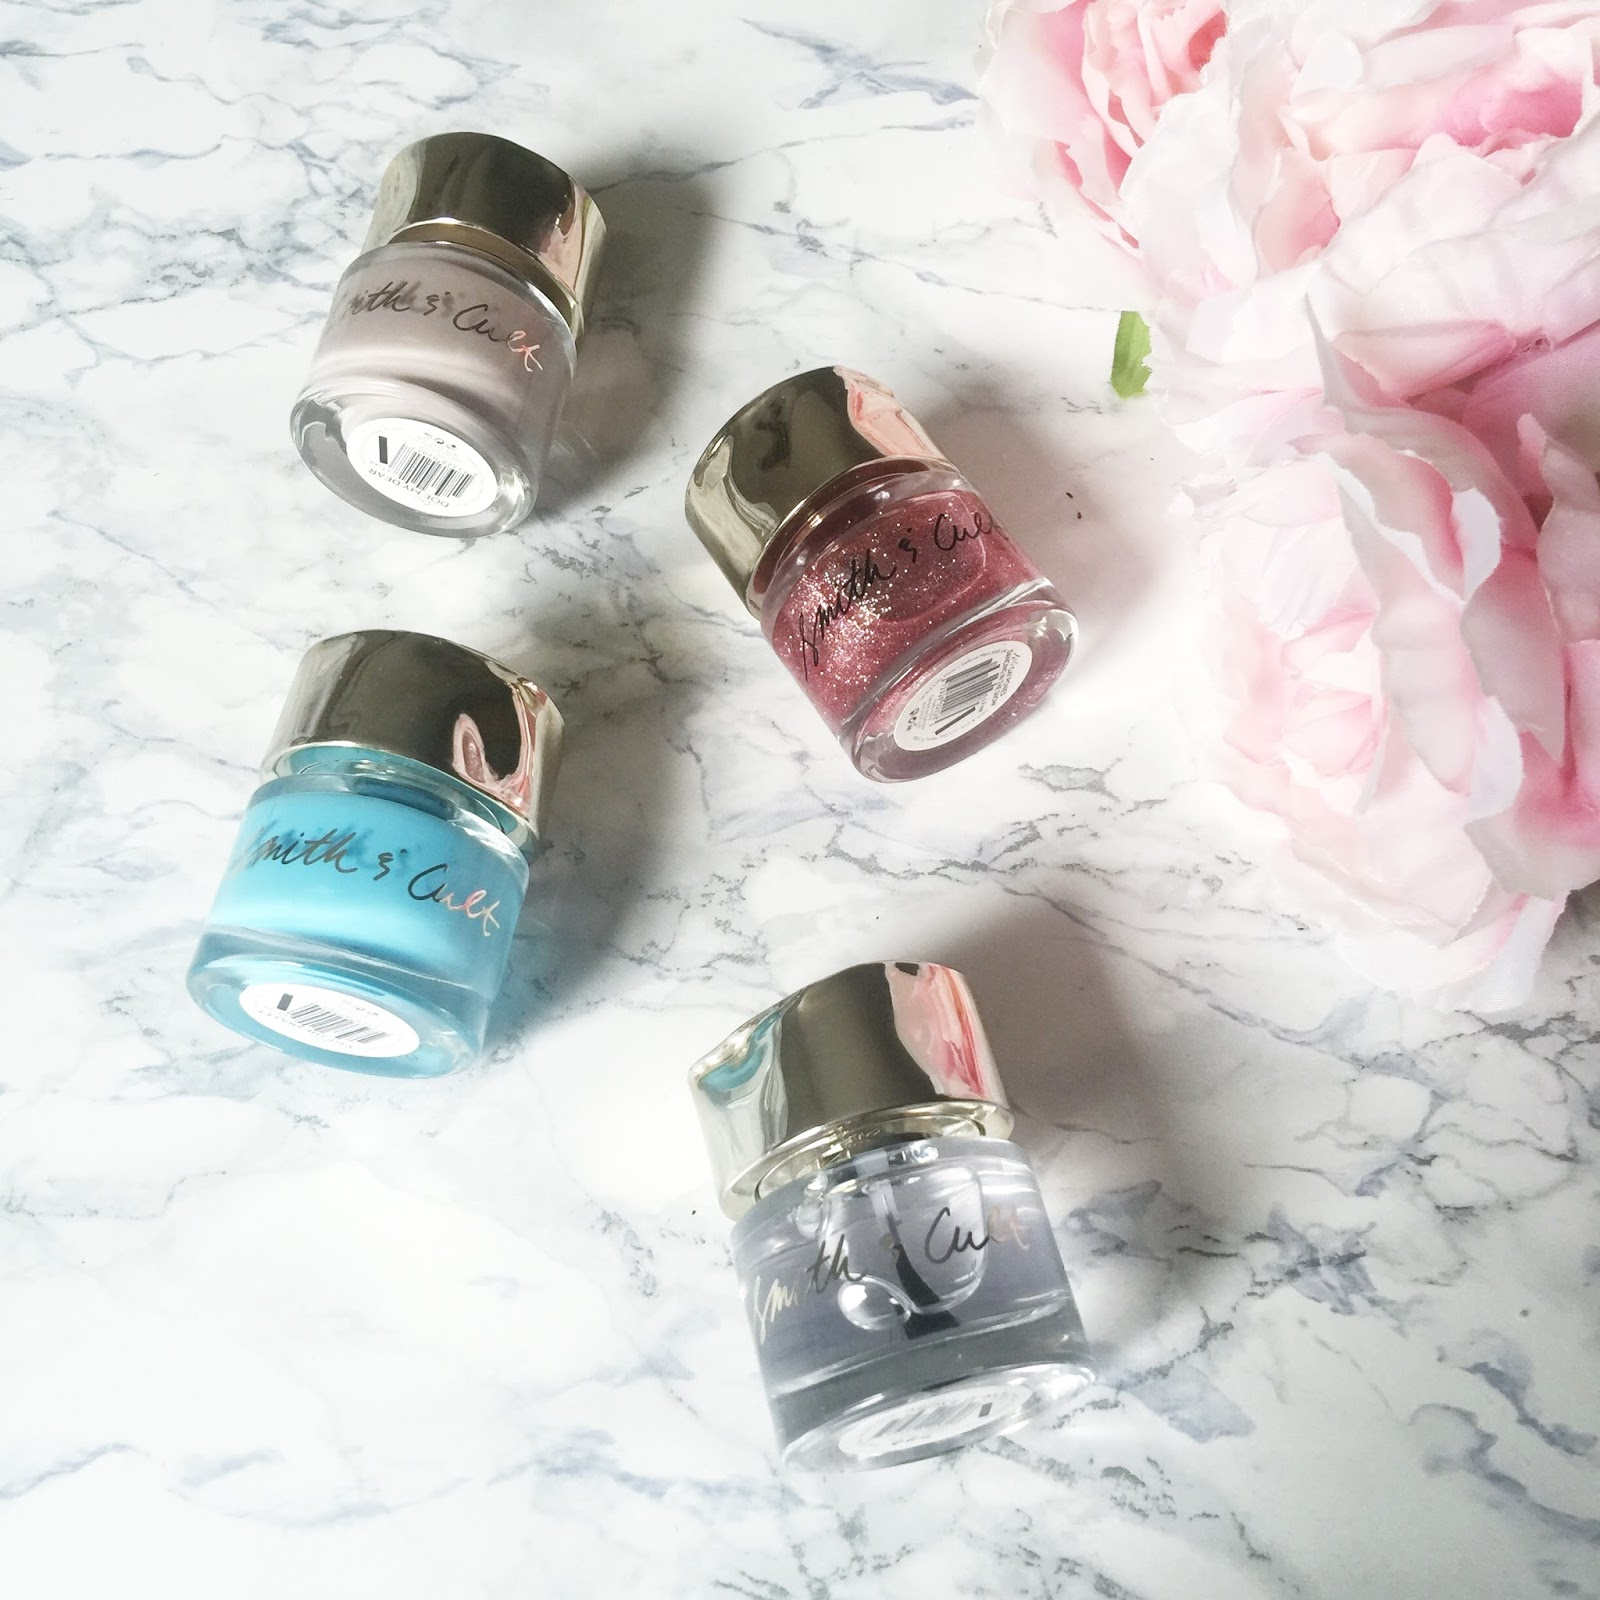 Smith & Cult Nail Varnishes Review